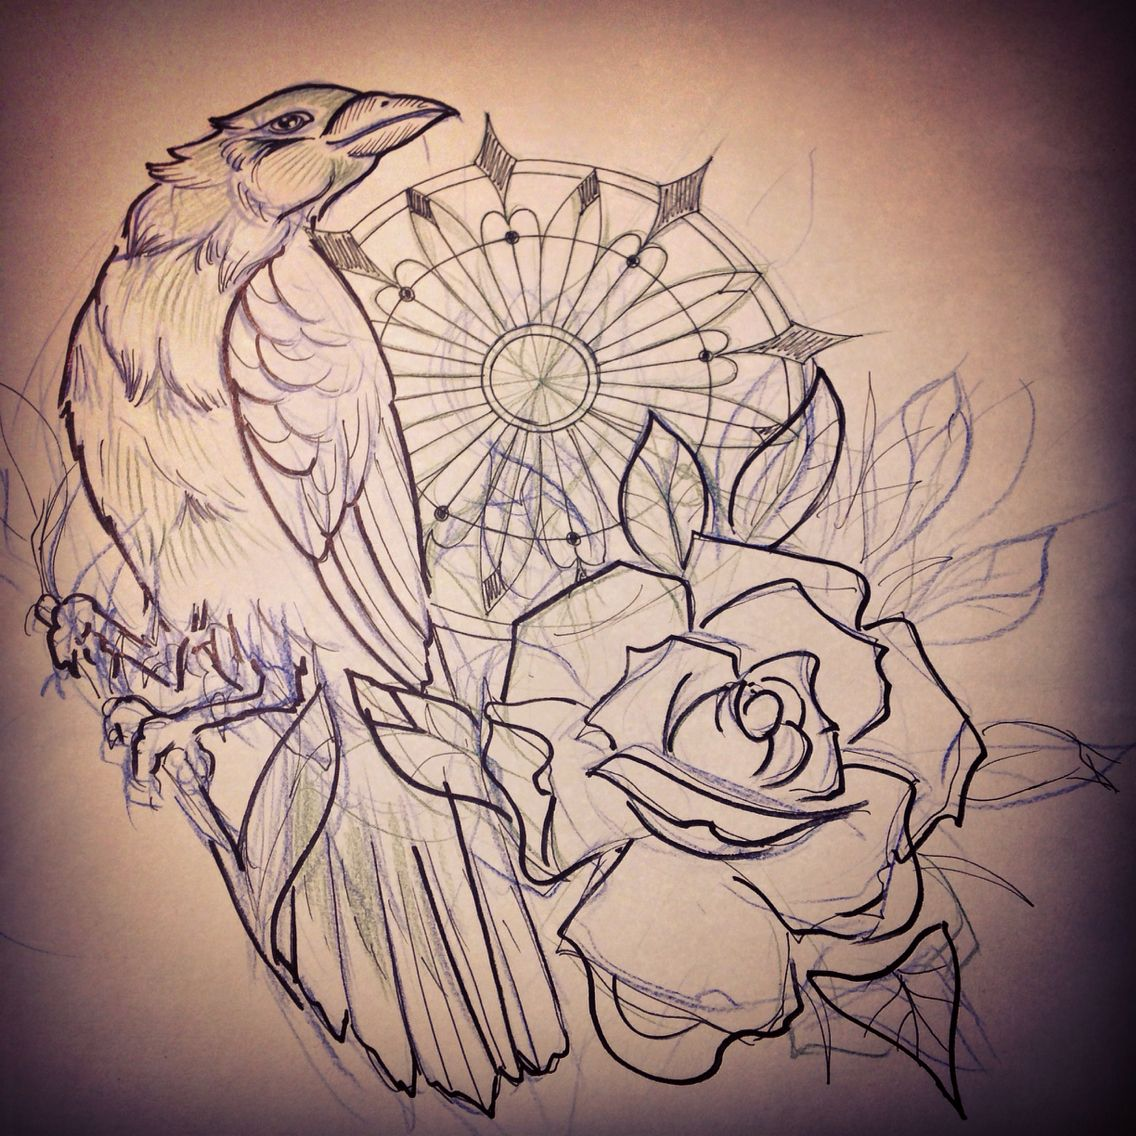 Study for a cover up. Neotraditional crow and rose. | My ...